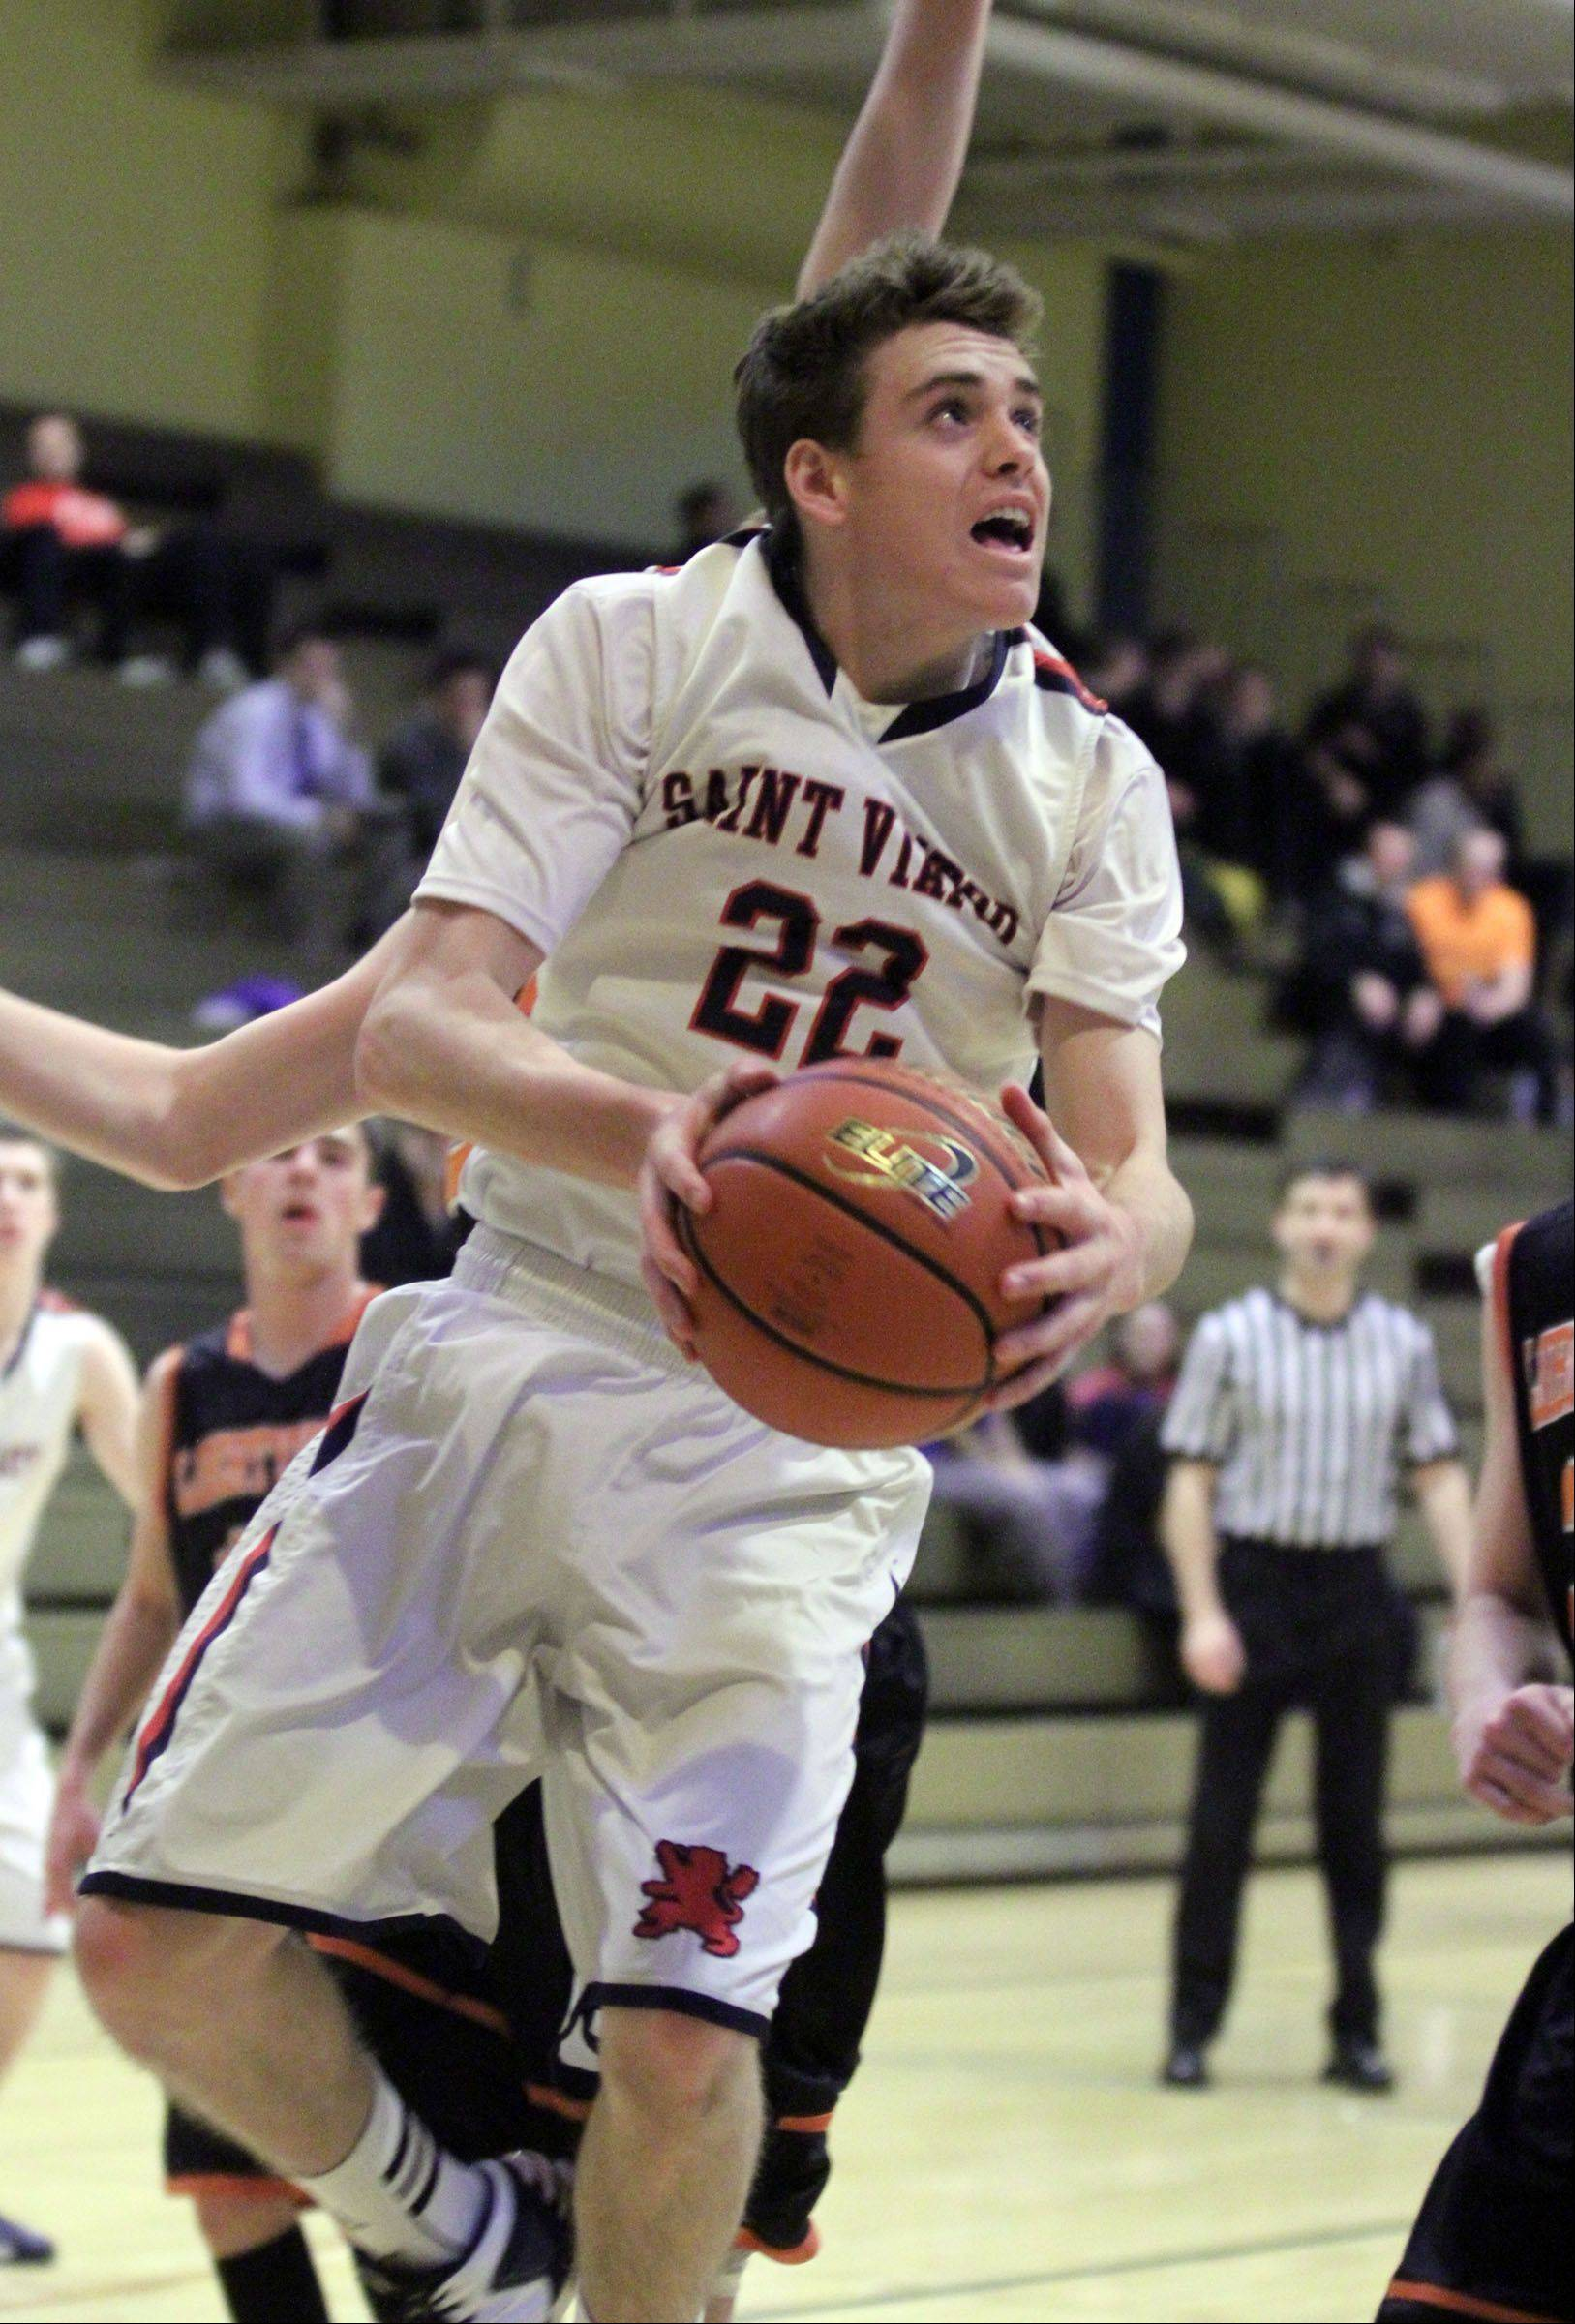 Images from the St. Viator vs. Libertyville boys basketball game on Wednesday, December 26th, in Wheeling.